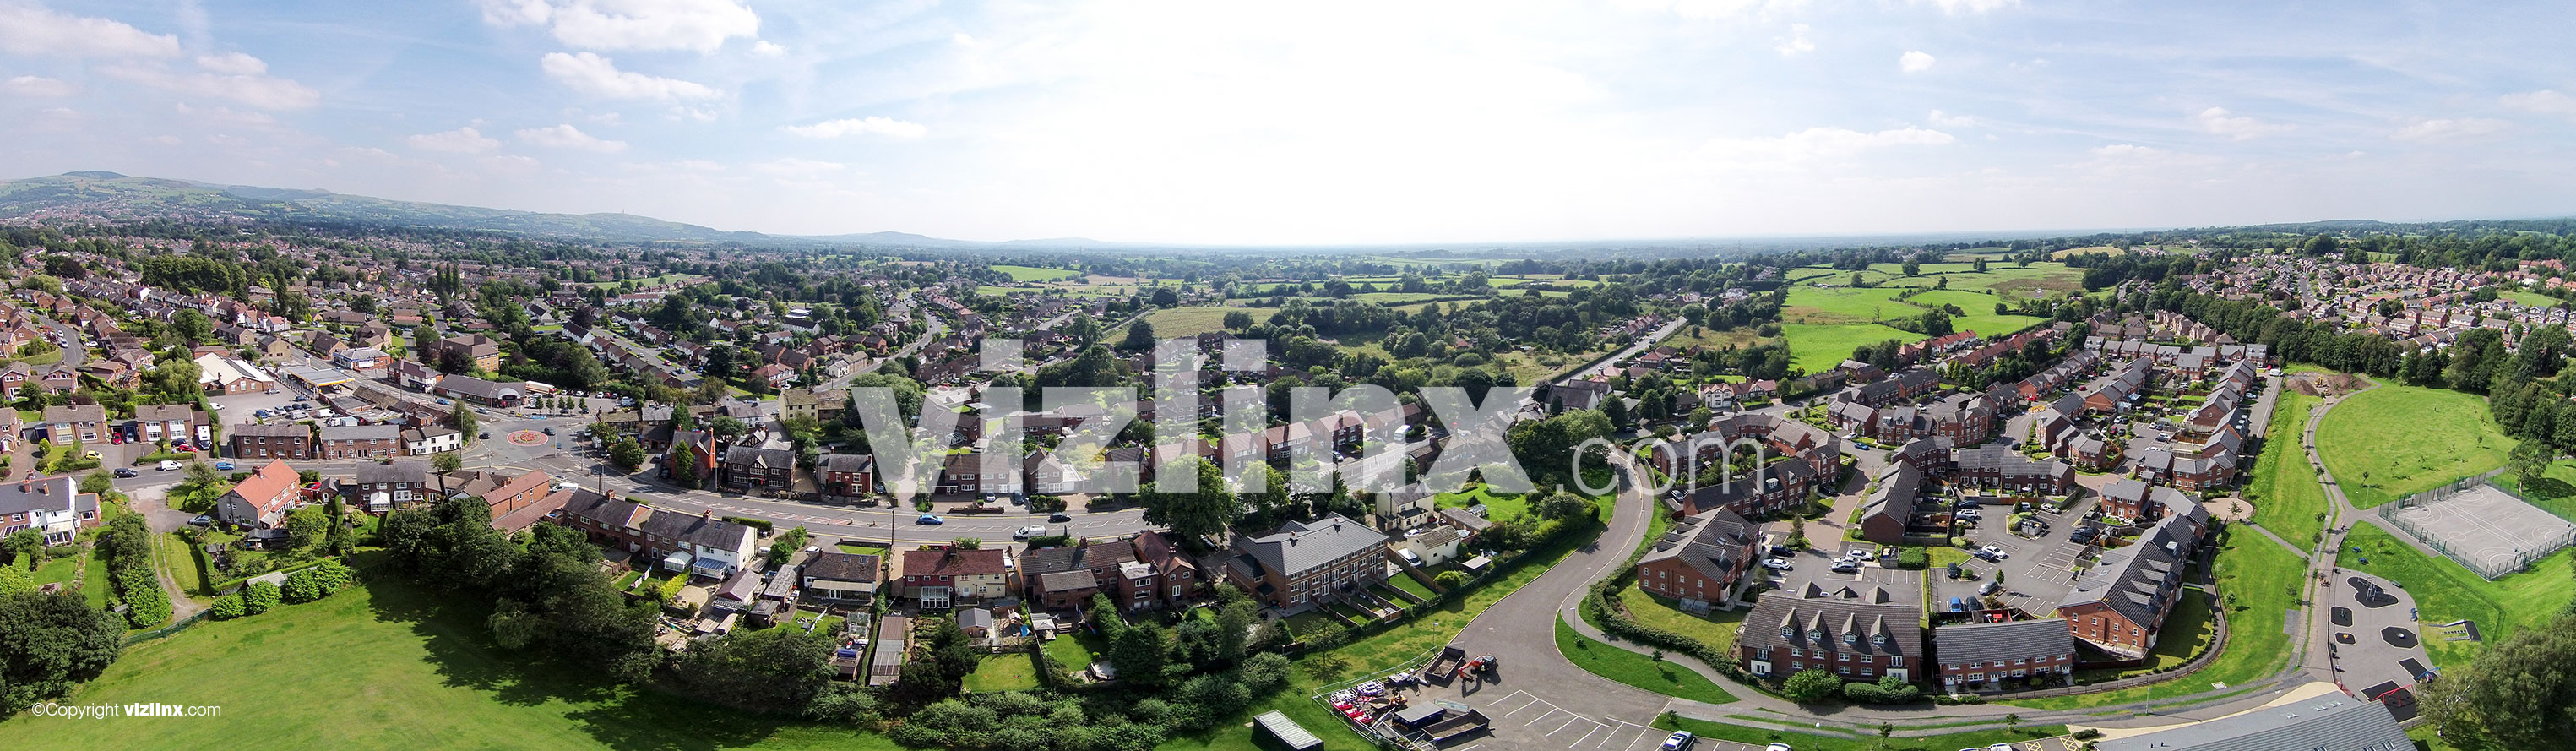 360 panorama of Macclesfield